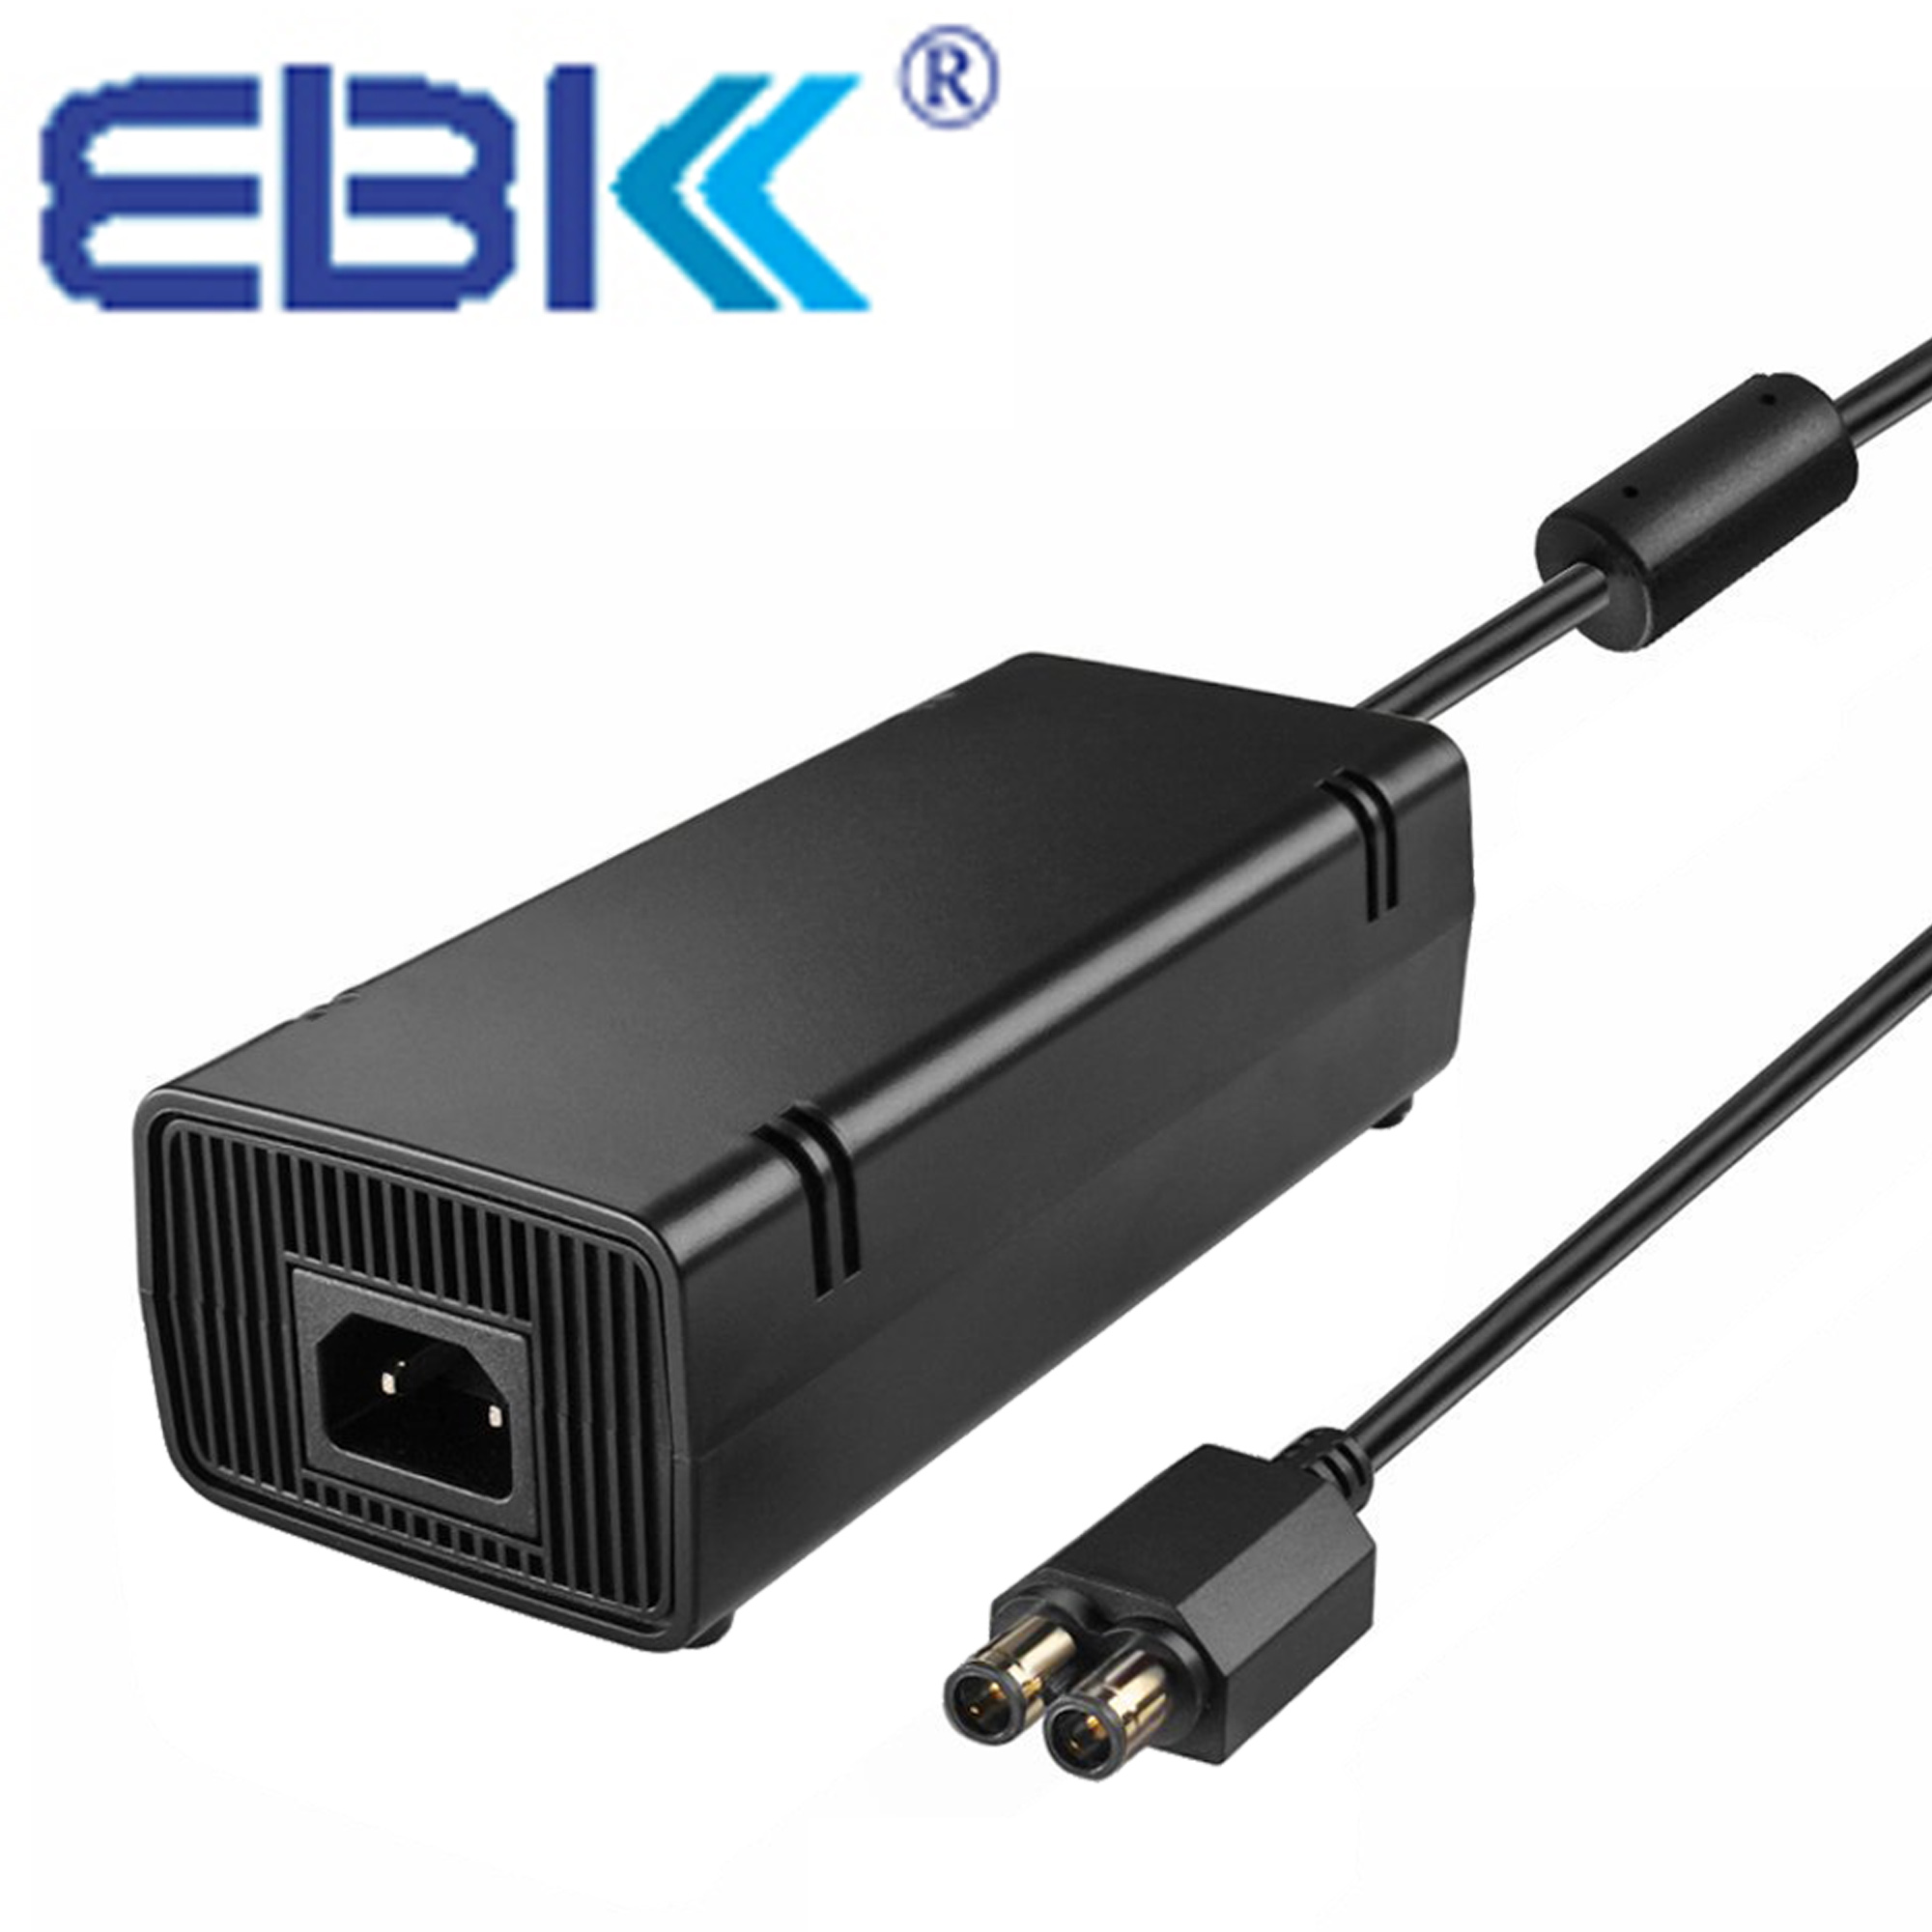 EBK New Upgraded Power Supply Brick For Microsoft Xbox 360 X360 Slim console AC Adapter Wall Charger with Power Cable Cord